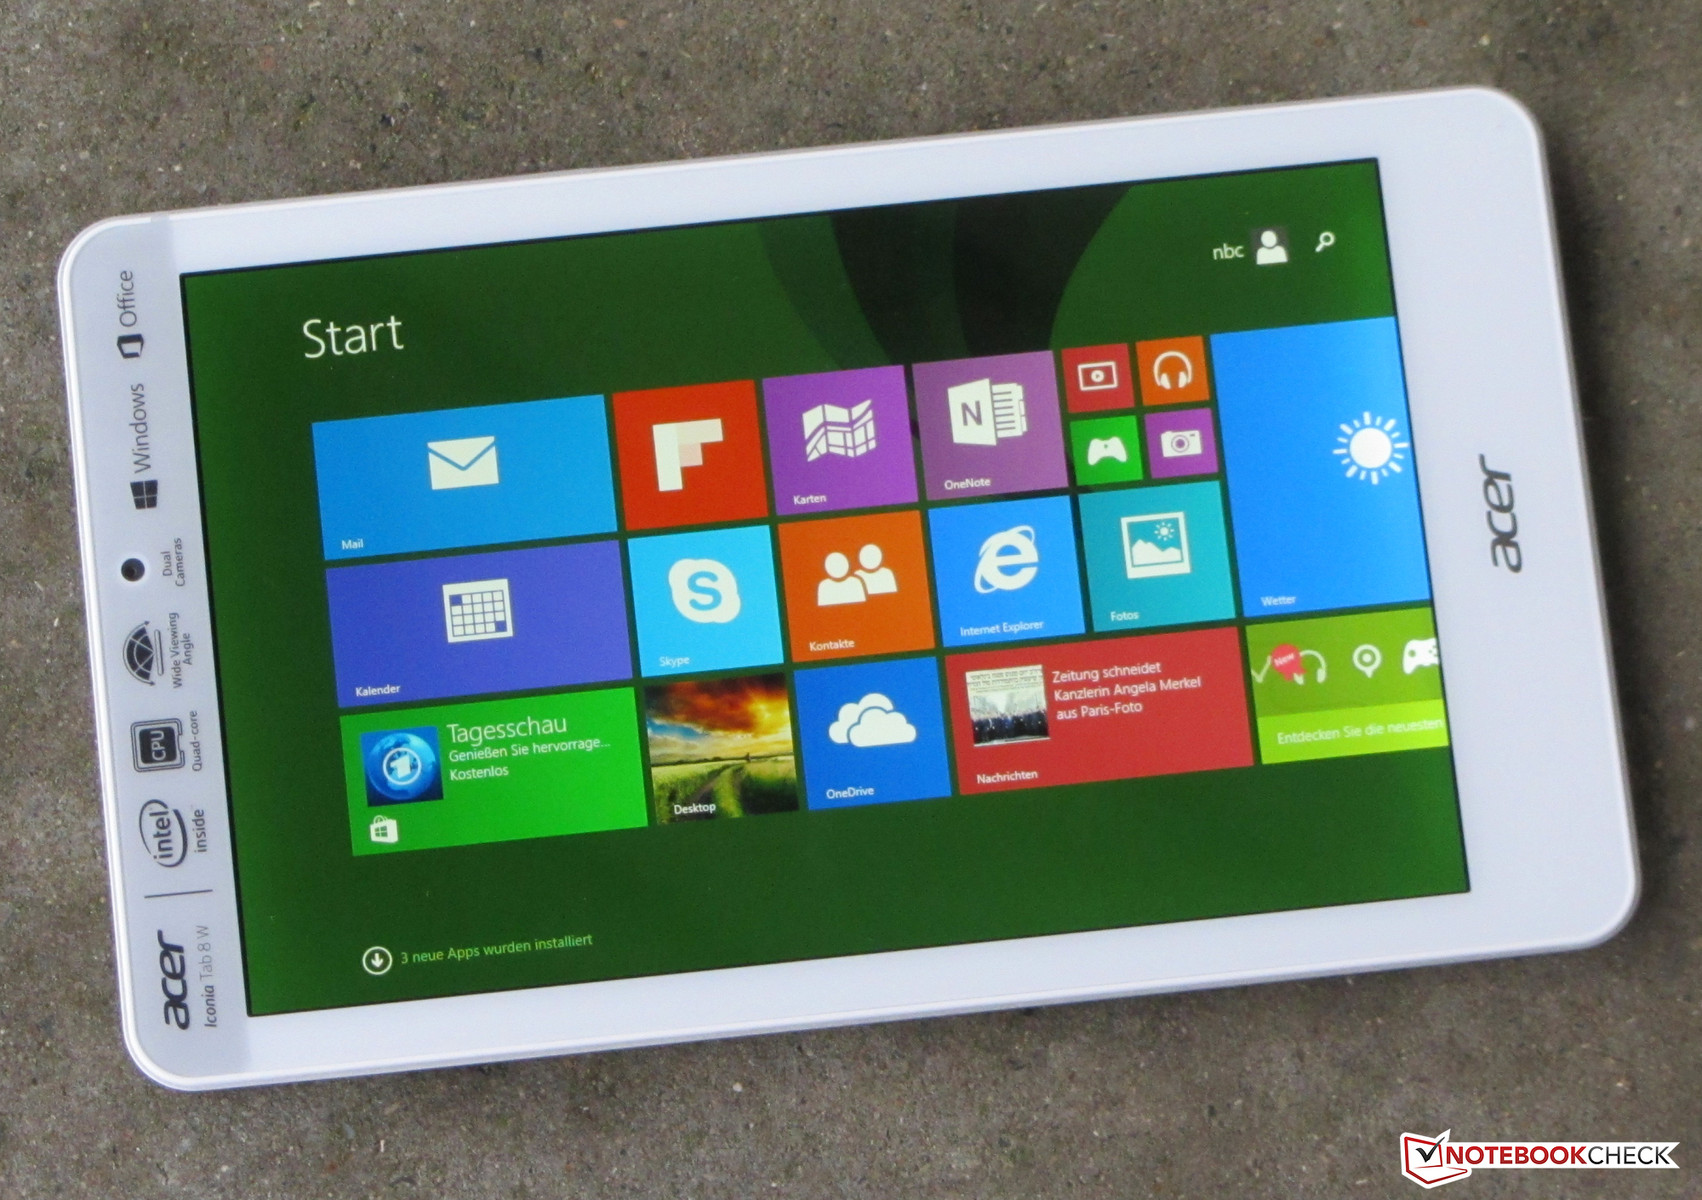 ACER ICONIA W3-810 BROADCOM WLAN WINDOWS 7 DRIVERS DOWNLOAD